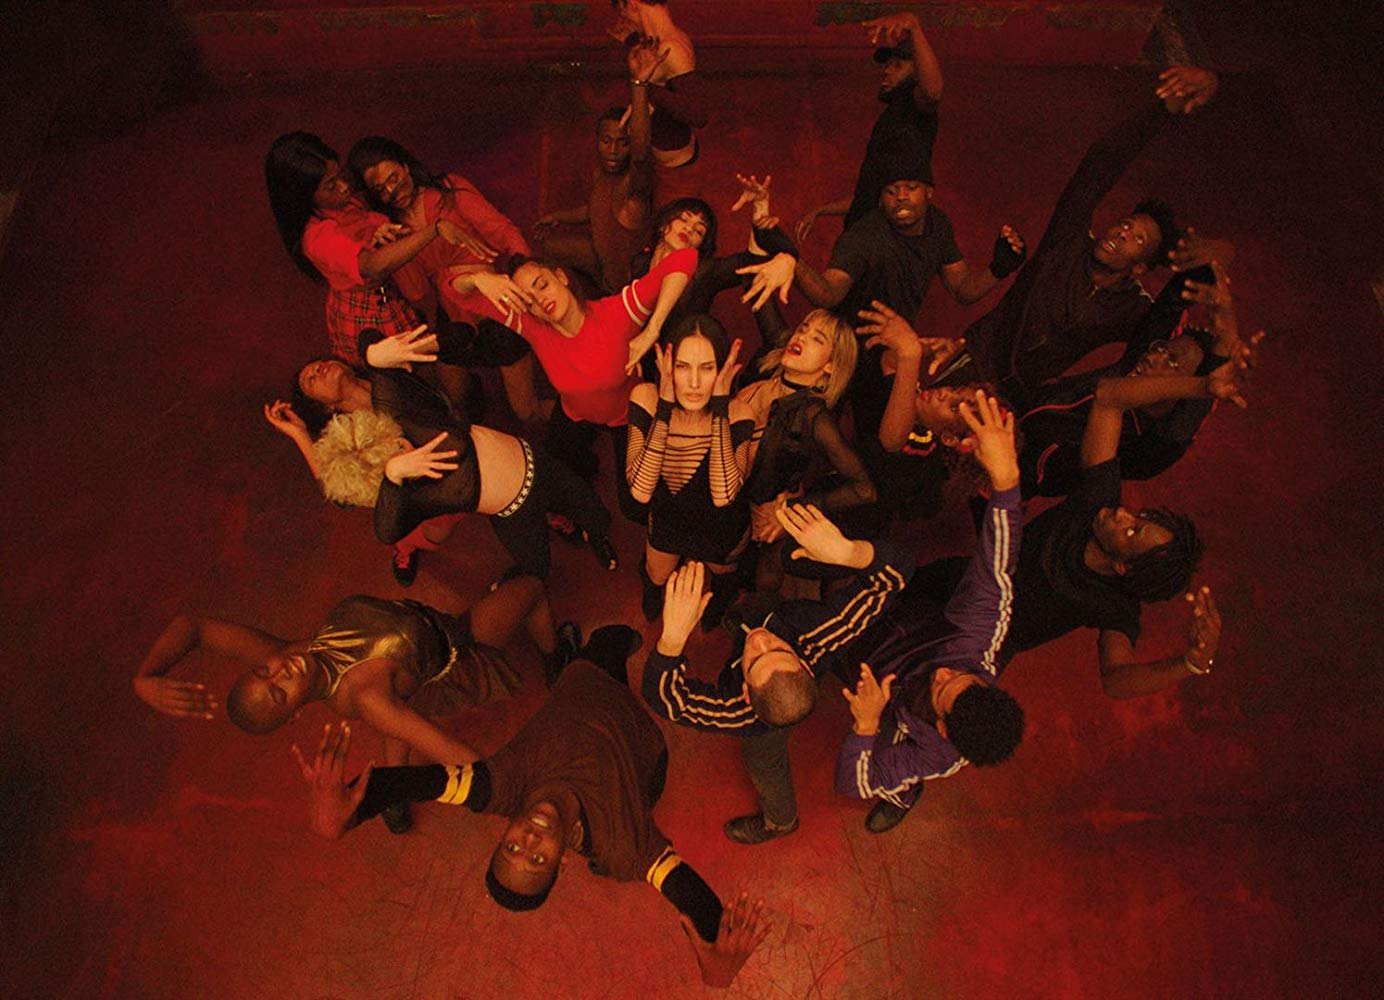 The image features a close aerial shot of the dancers mid-rehearsal in Gaspar Noé's film, Climax. A dancer is performing in the center as the rest of the group flails and dances around her.